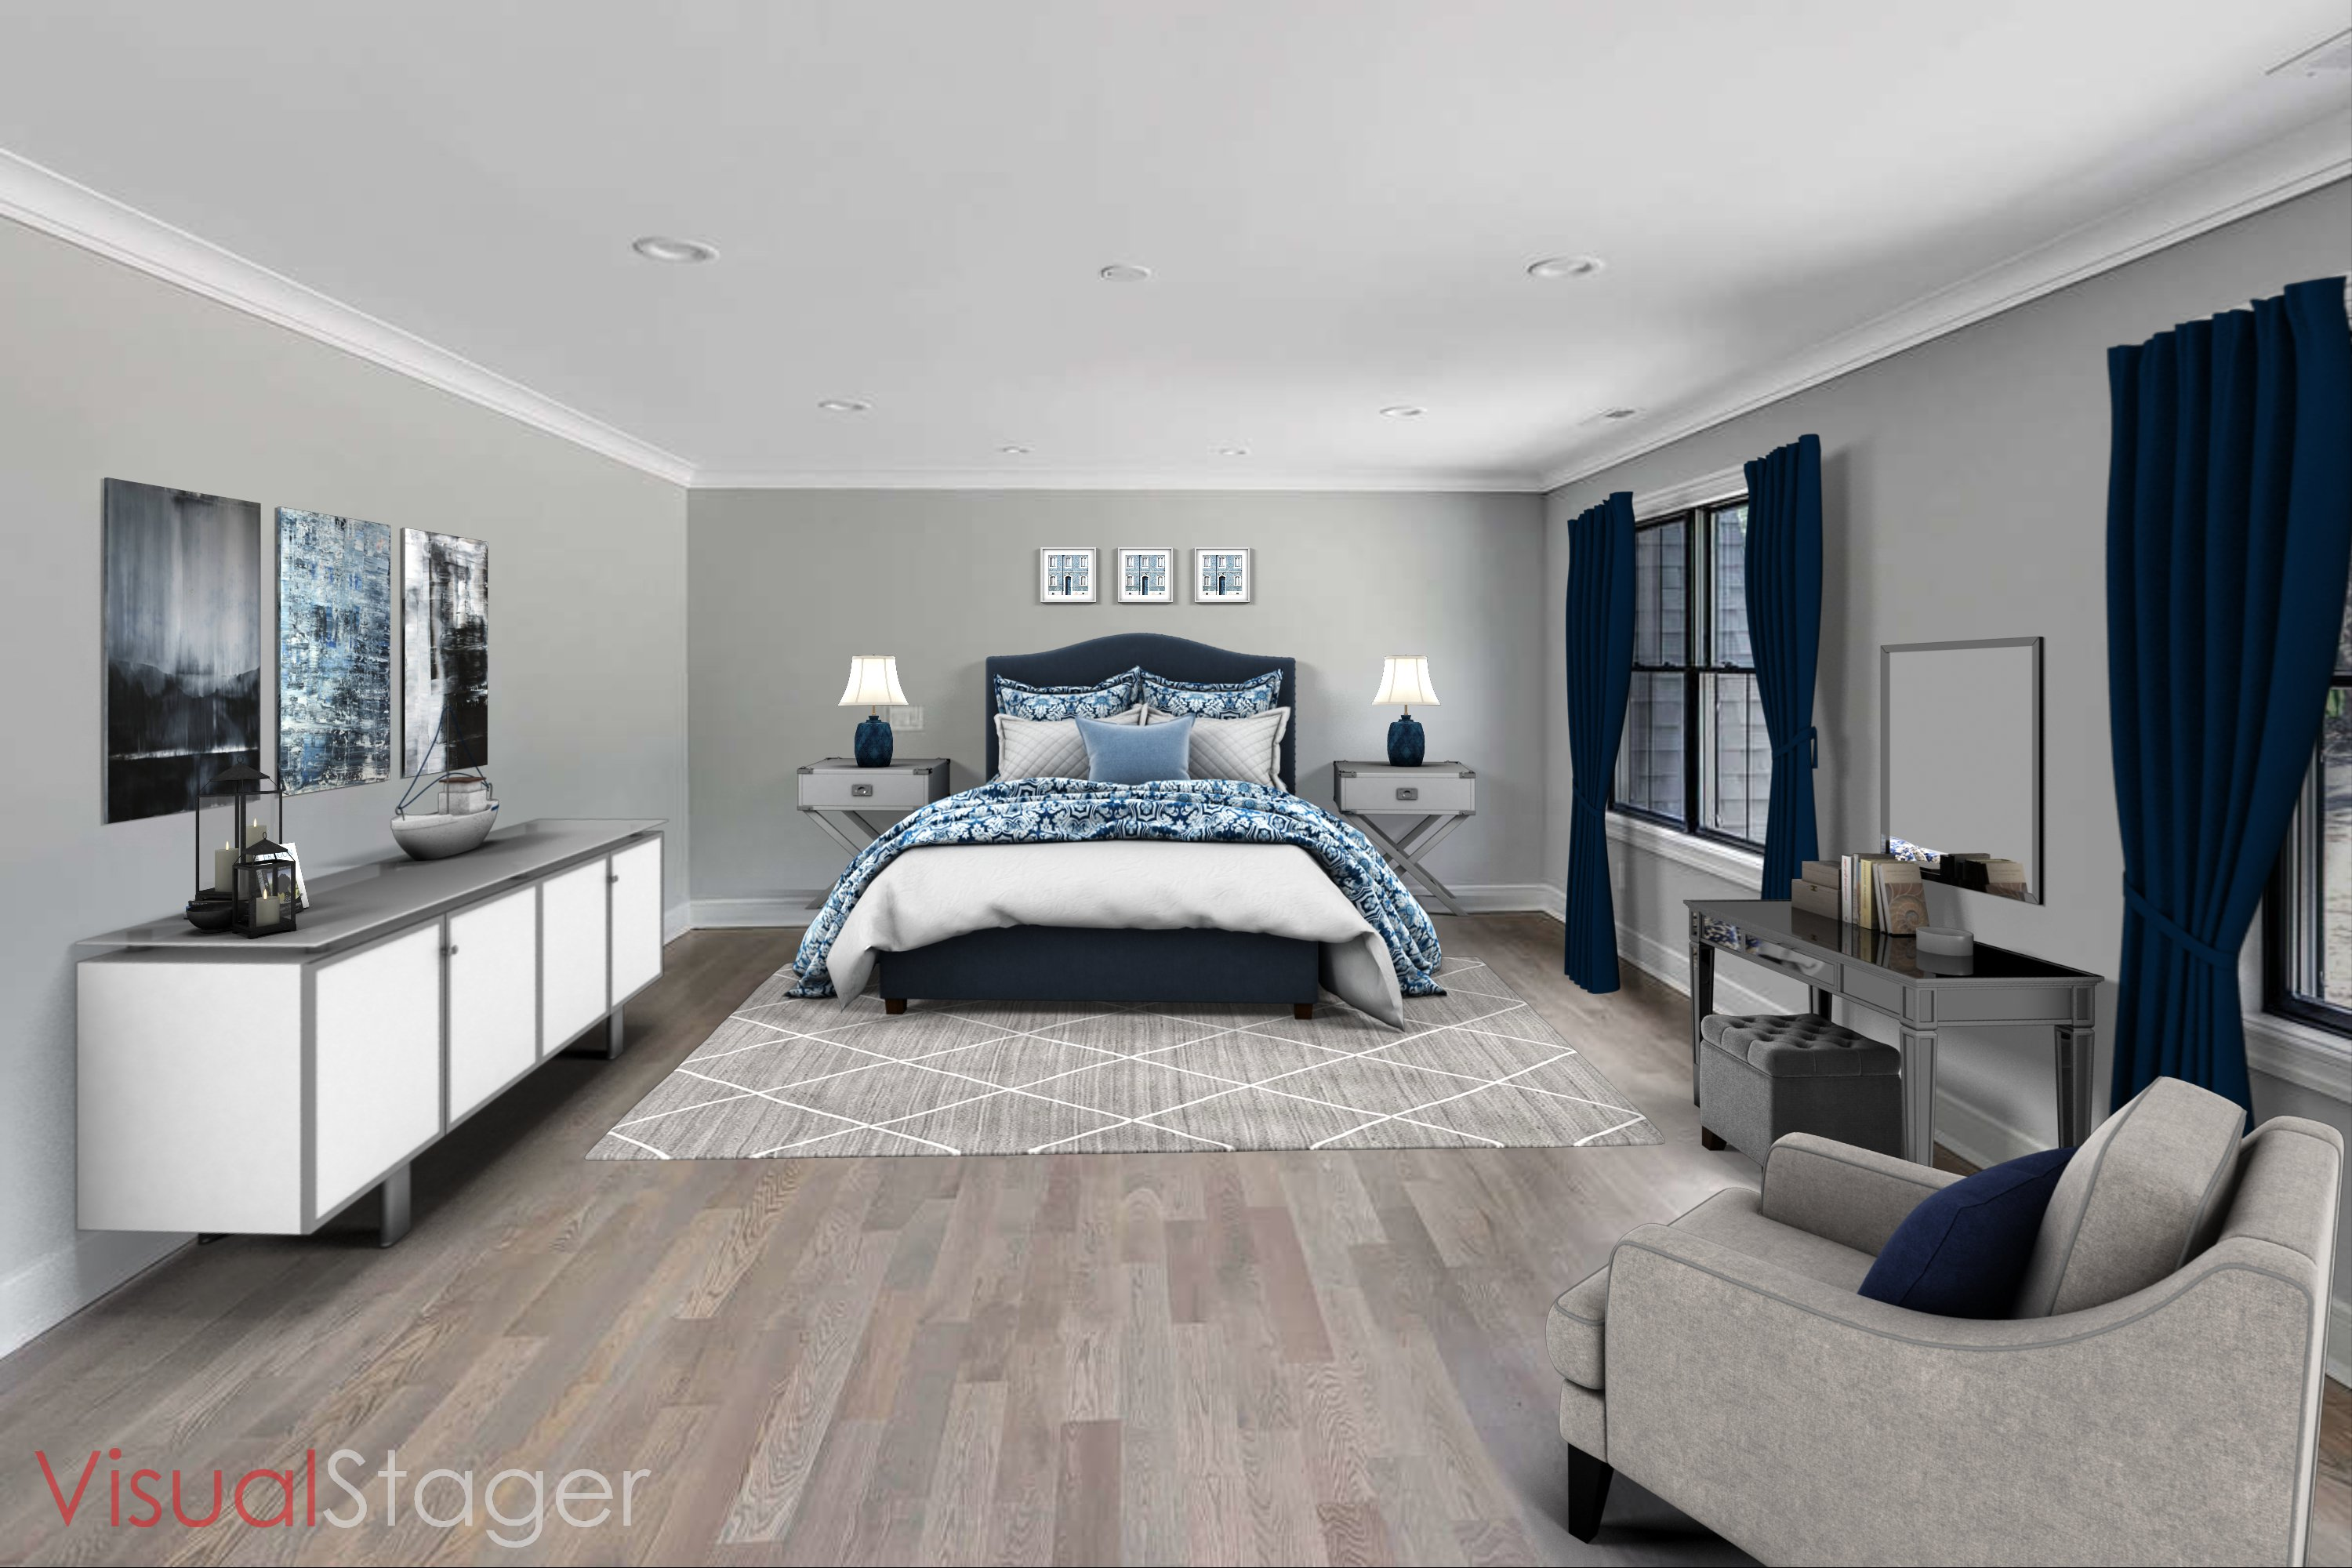 Bedroom - Virtual Staging After